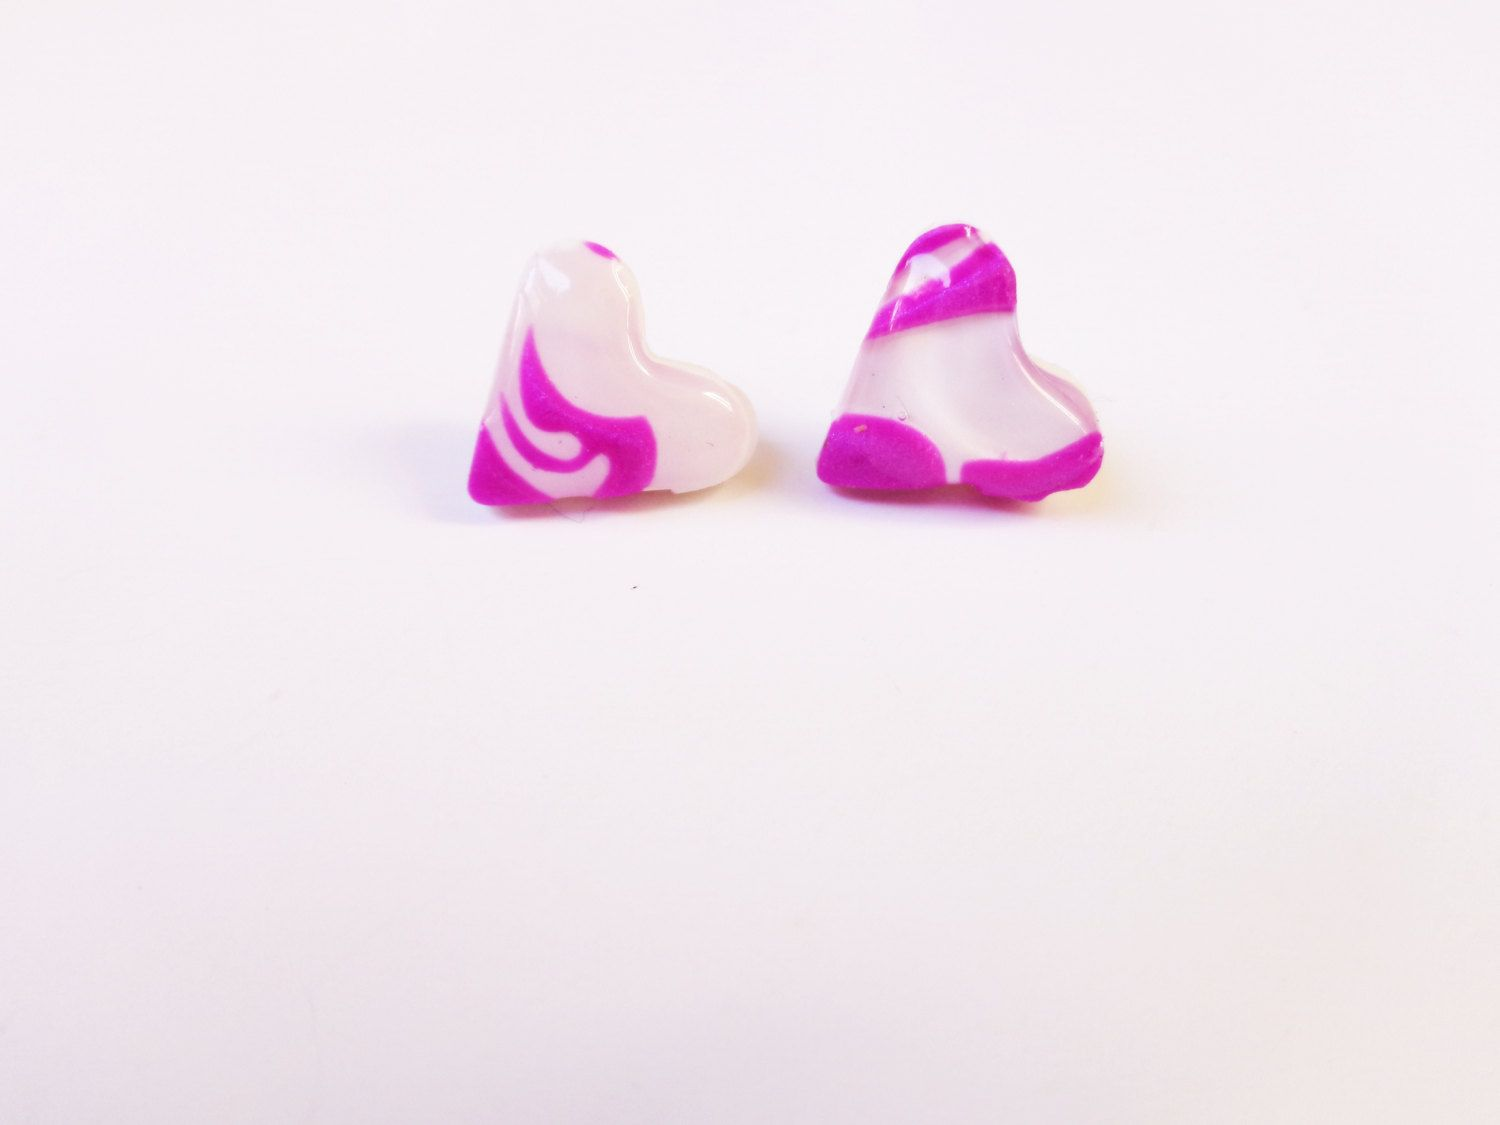 Heart Stud Earrings, Polymer Clay Heart Earrings, Stainless Earrings For  Sensitive Ears, Gift For Her, Christmas Gift For Women By Fairydusthc On  Etsy